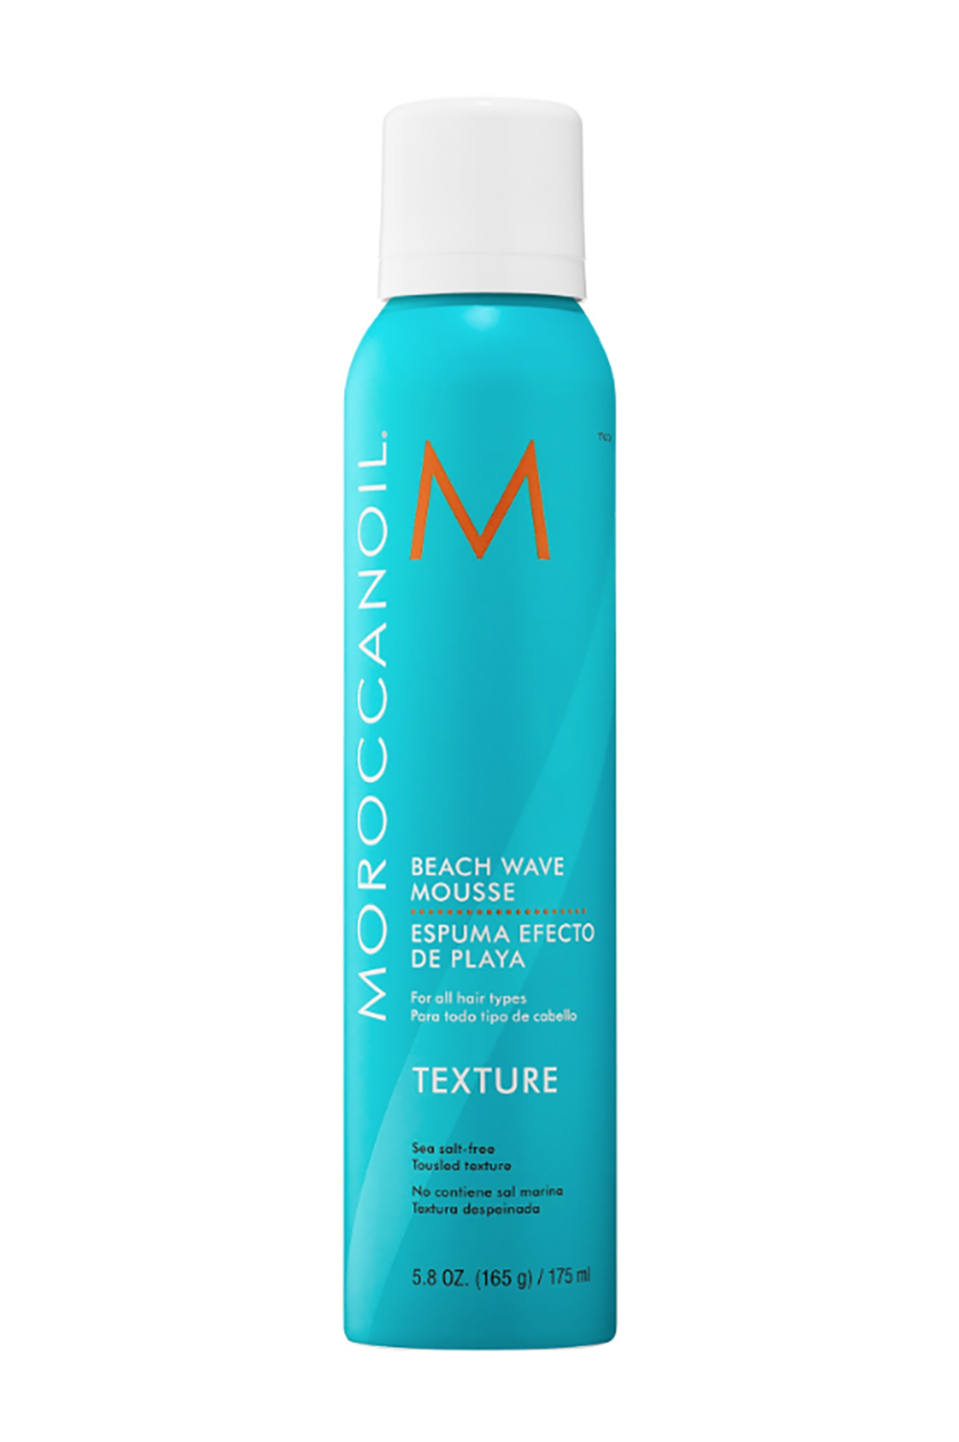 """<p><strong>Moroccanoil</strong></p><p>nordstrom.com</p><p><strong>$13.00</strong></p><p><a href=""""https://go.redirectingat.com?id=74968X1596630&url=https%3A%2F%2Fshop.nordstrom.com%2Fs%2Fmoroccanoil-beach-wave-mousse%2F4309602&sref=https%3A%2F%2Fwww.marieclaire.com%2Fbeauty%2Fnews%2Fg2902%2Fbest-beach-wave-salt-sprays%2F"""" rel=""""nofollow noopener"""" target=""""_blank"""" data-ylk=""""slk:SHOP IT"""" class=""""link rapid-noclick-resp"""">SHOP IT </a></p><p>Toss that old sea salt spray you've been using since summer 2016, and upgrade to this mousse. This argan oil-infused formula will give you wind-swept waves that won't feel like they're about to fall off your head due to dehydration by the end of the day.</p>"""